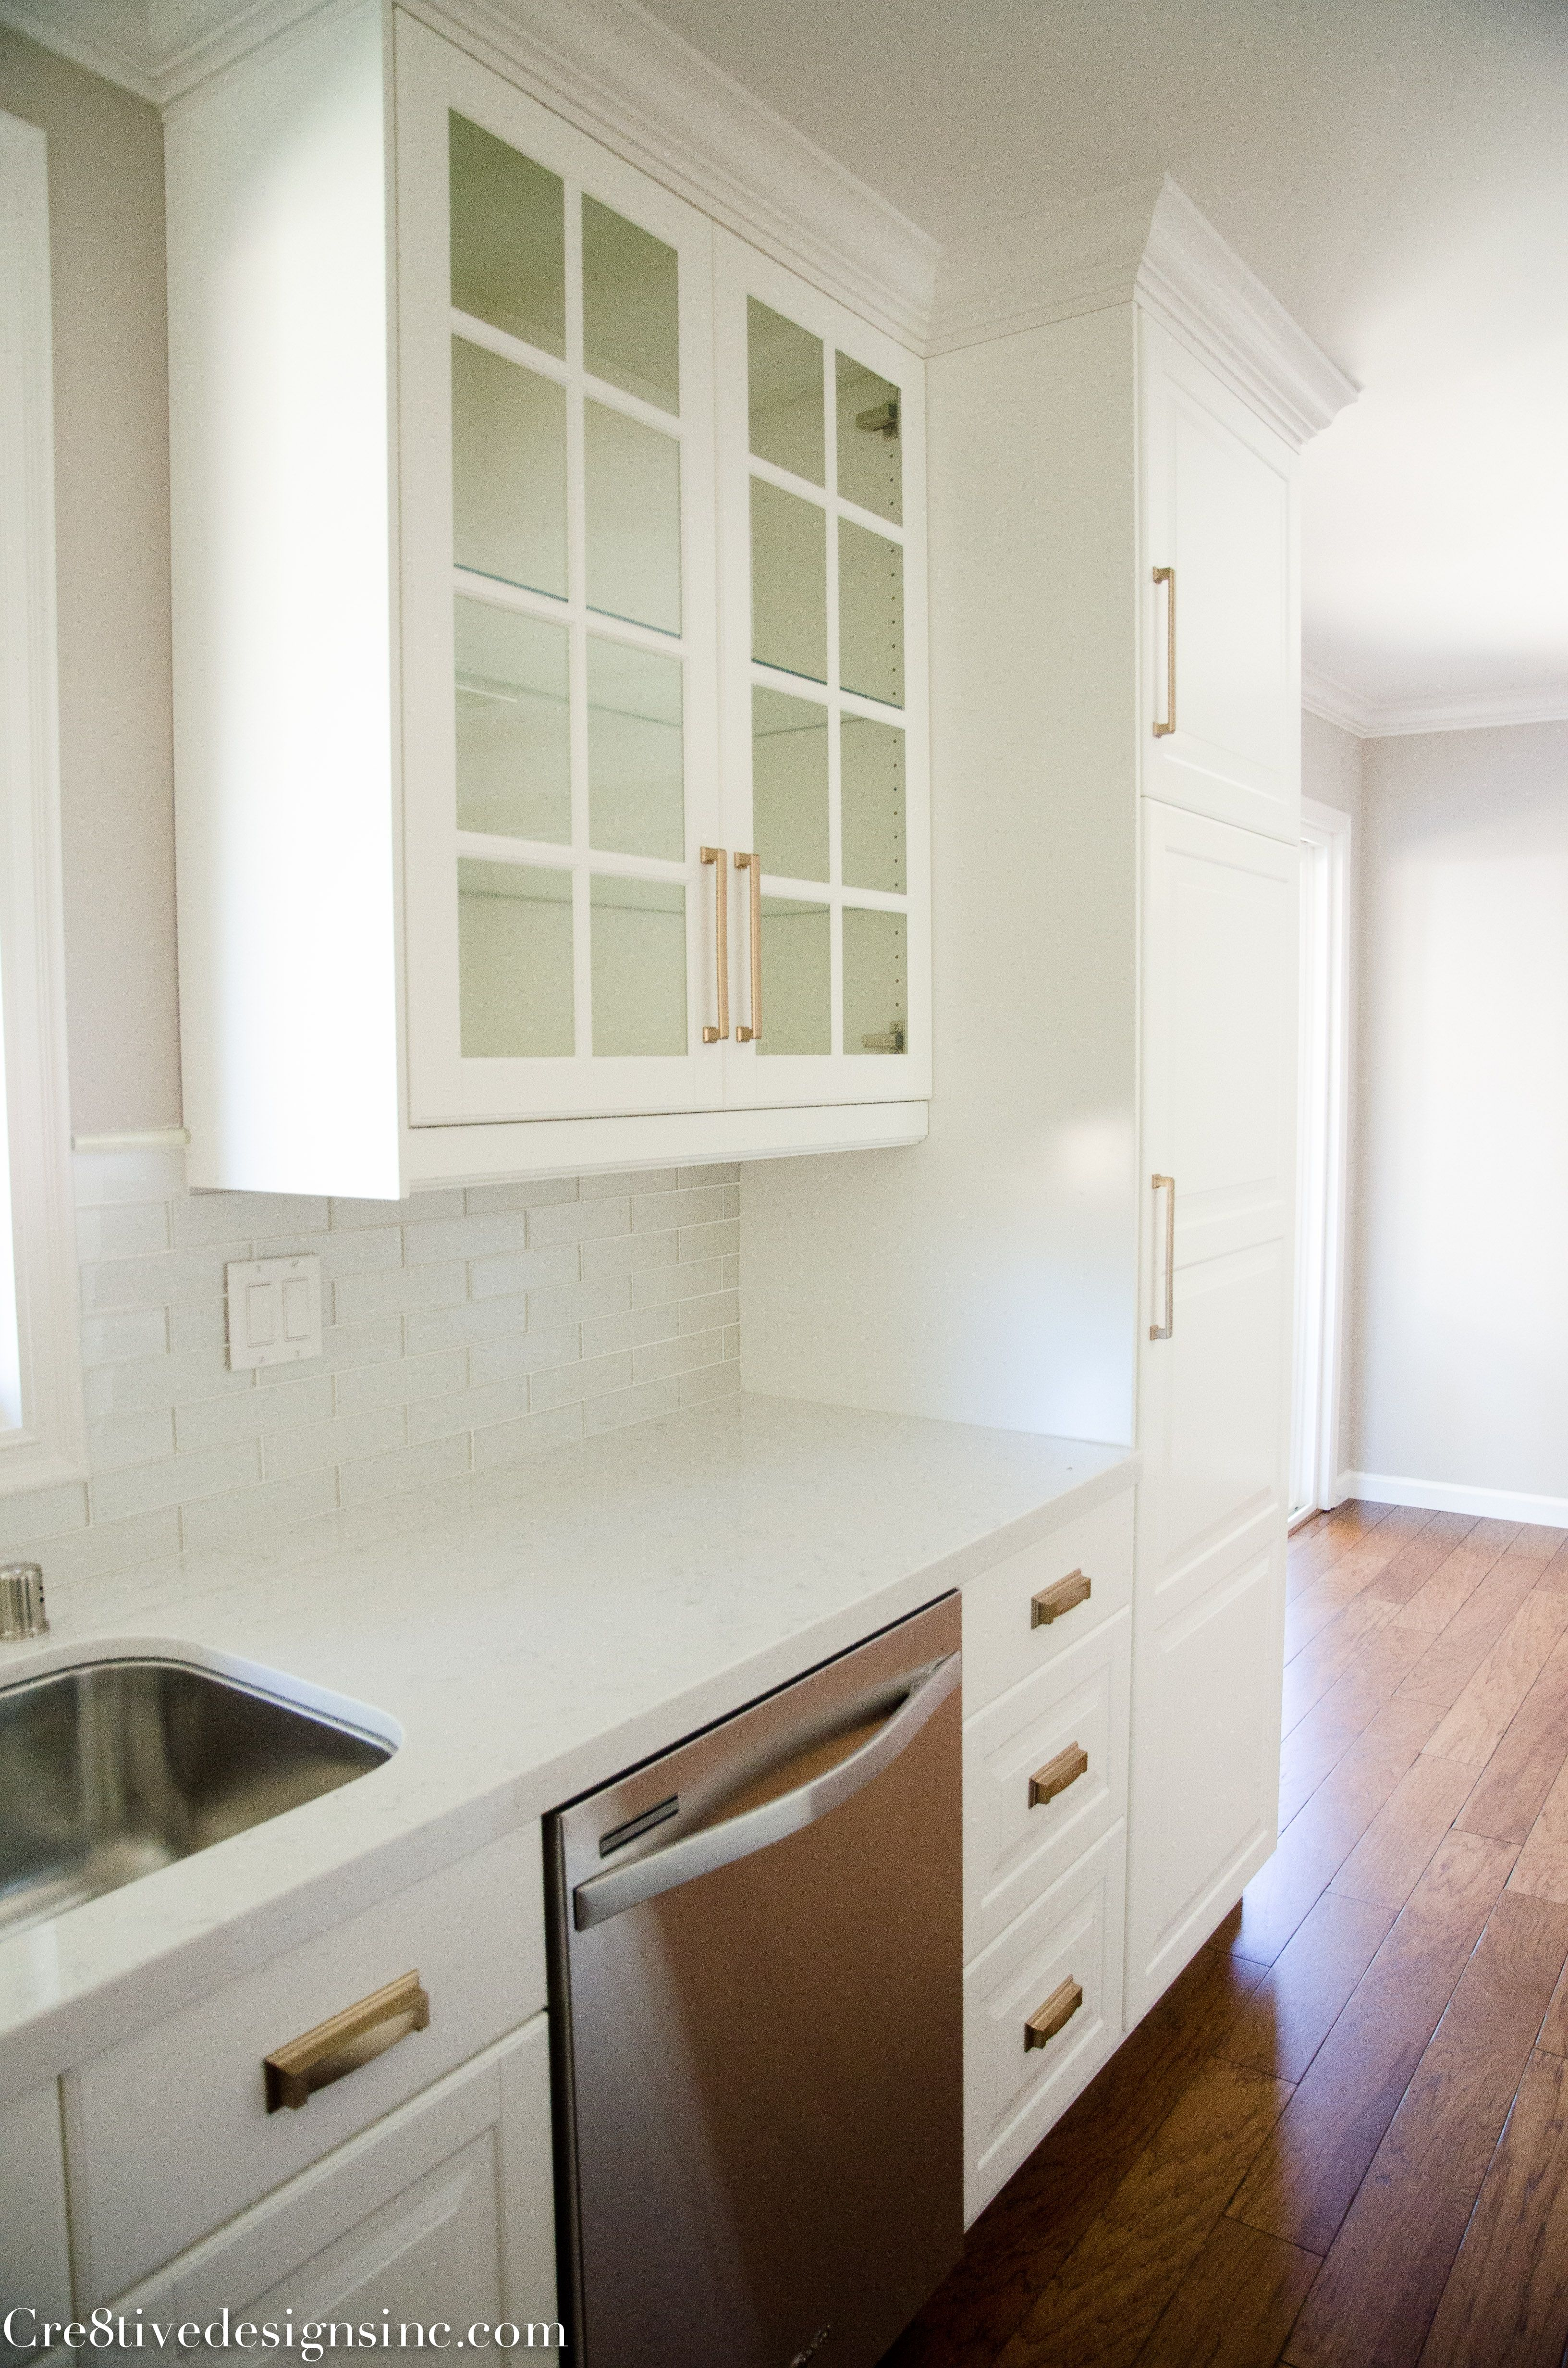 ikea kitchen cabinets crown molding ikea kitchen cabinets